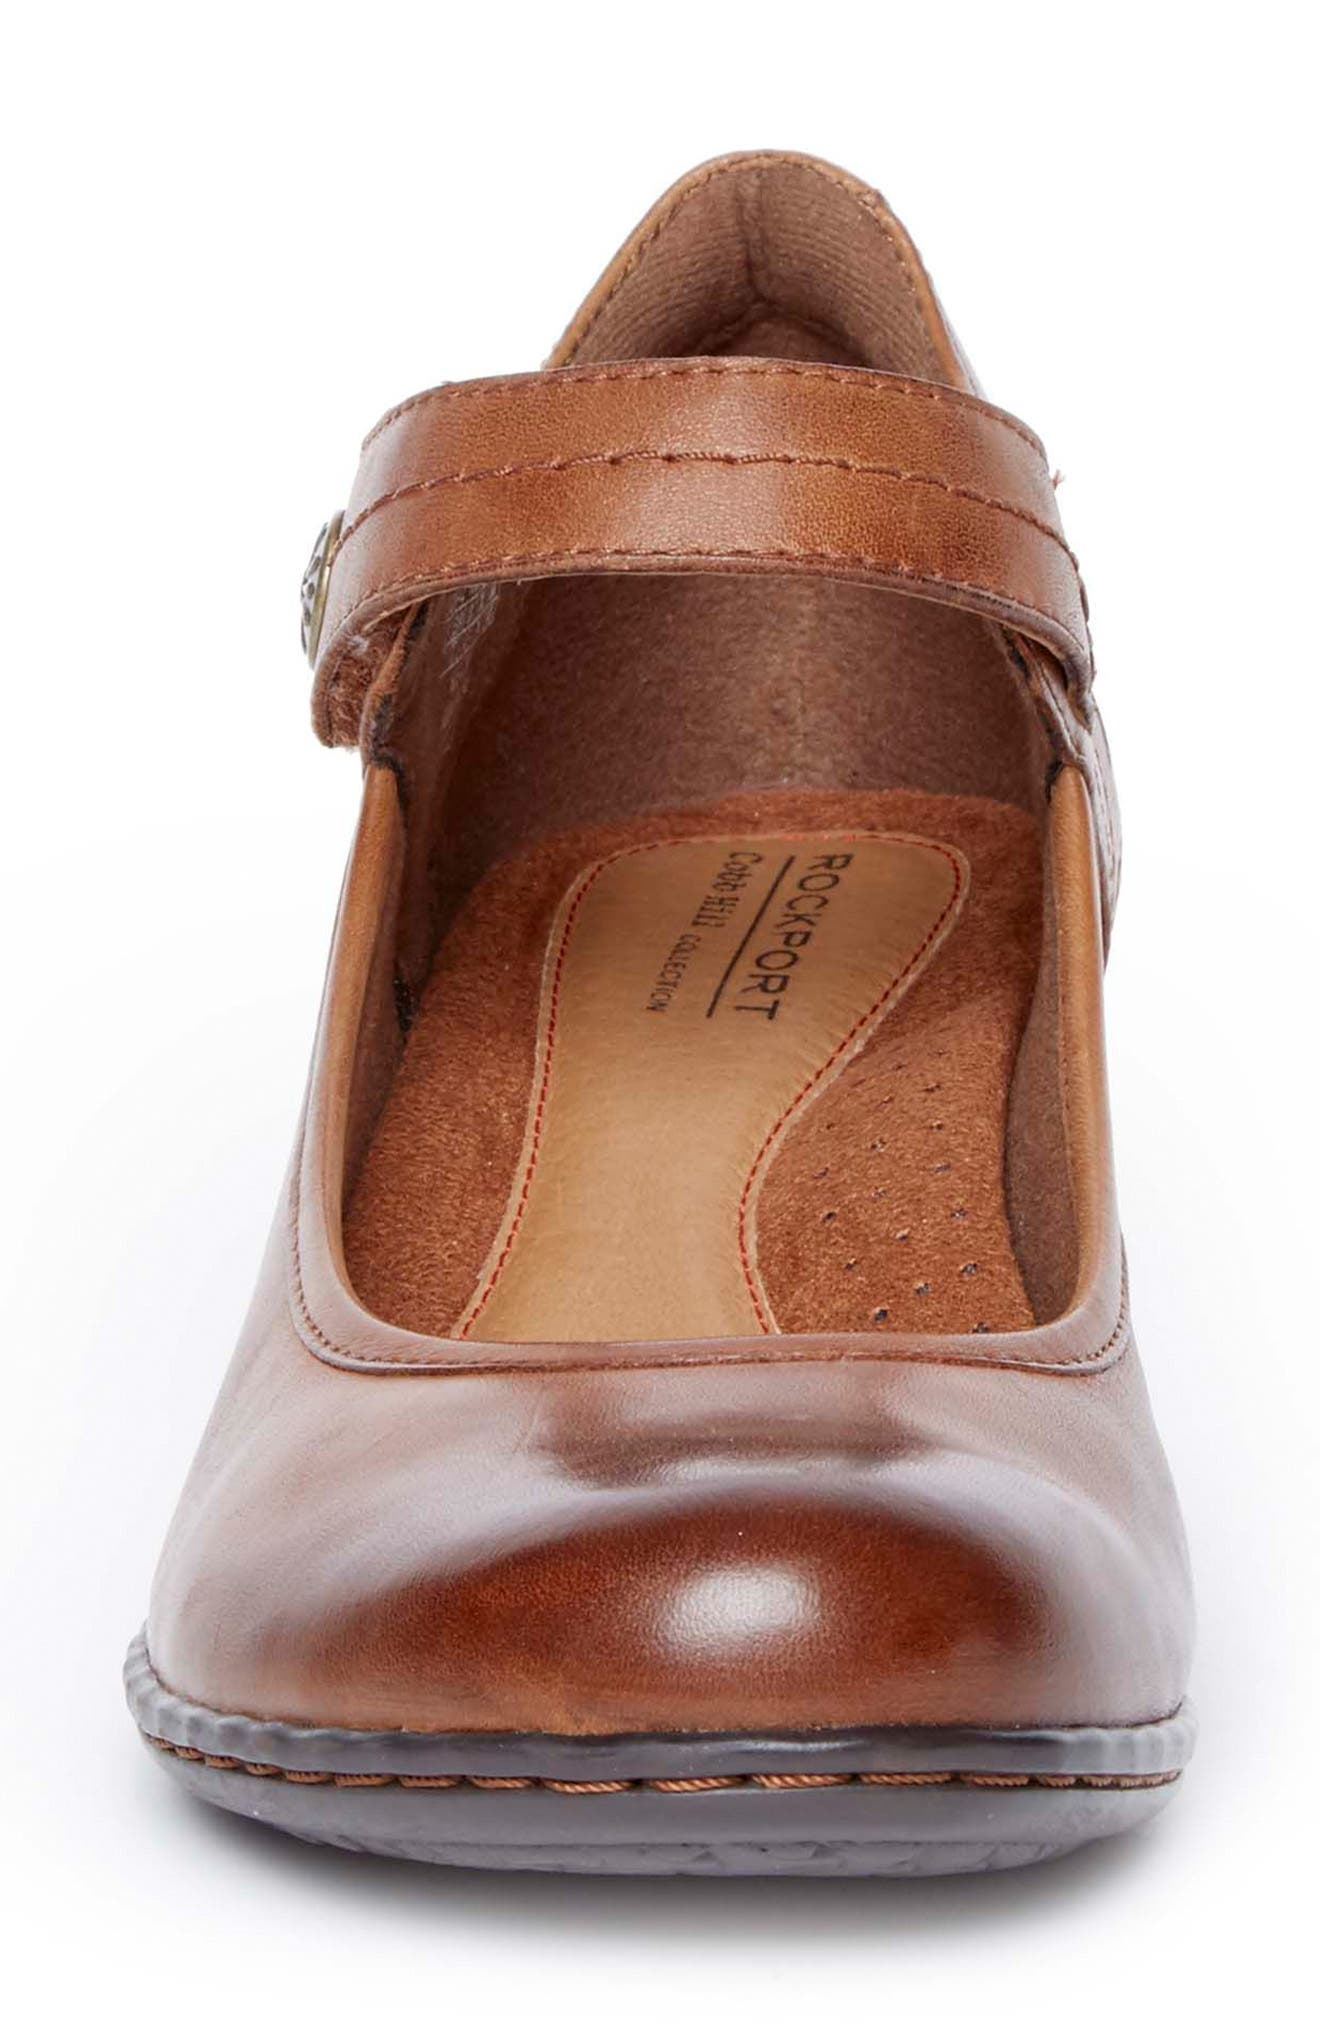 Abbott Mary Jane Pump,                             Alternate thumbnail 4, color,                             ALMOND LEATHER